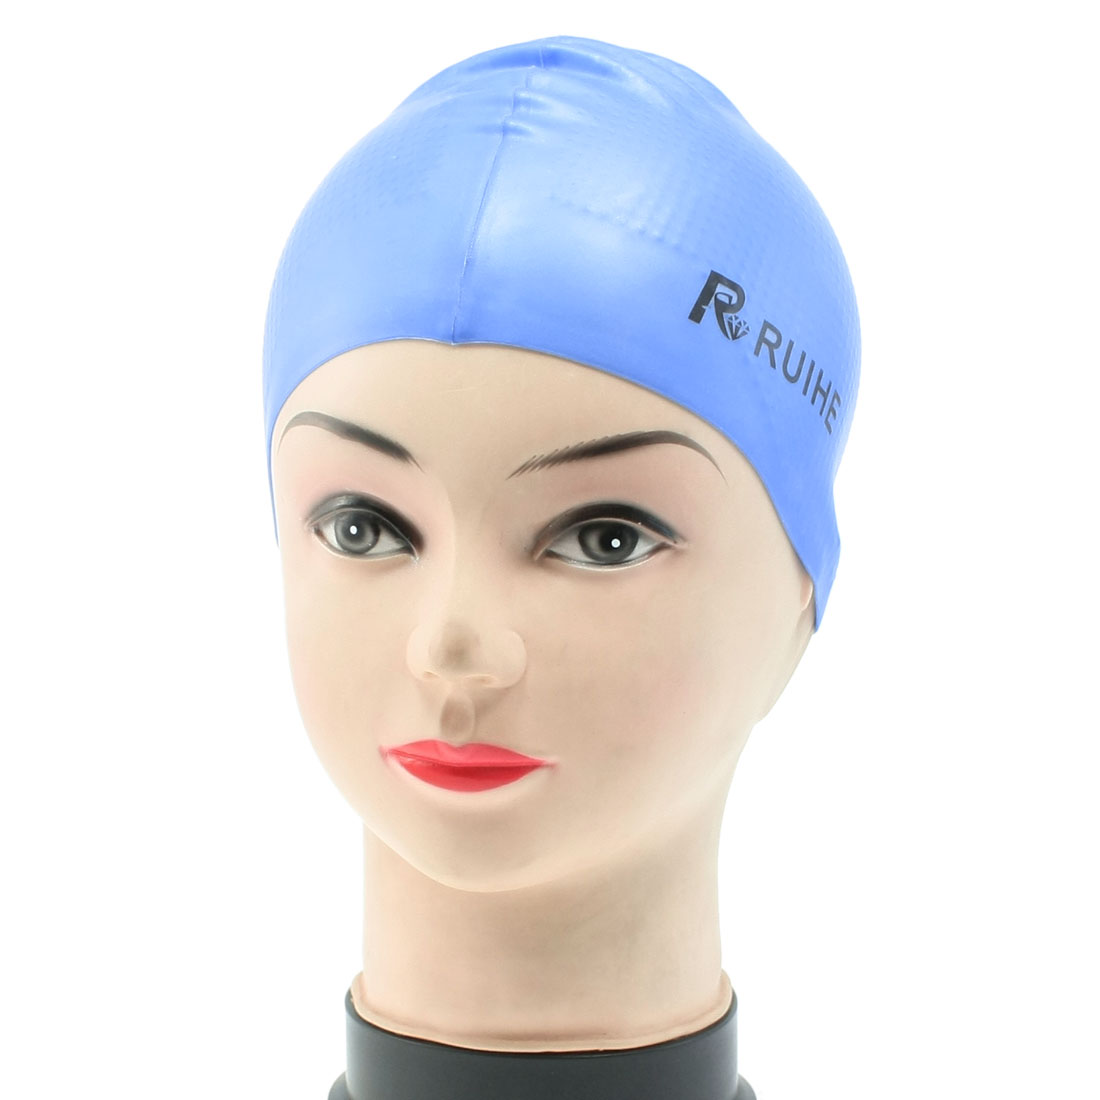 Dodger Blue Elastic Soft Silicone Swimming Cap for Adults